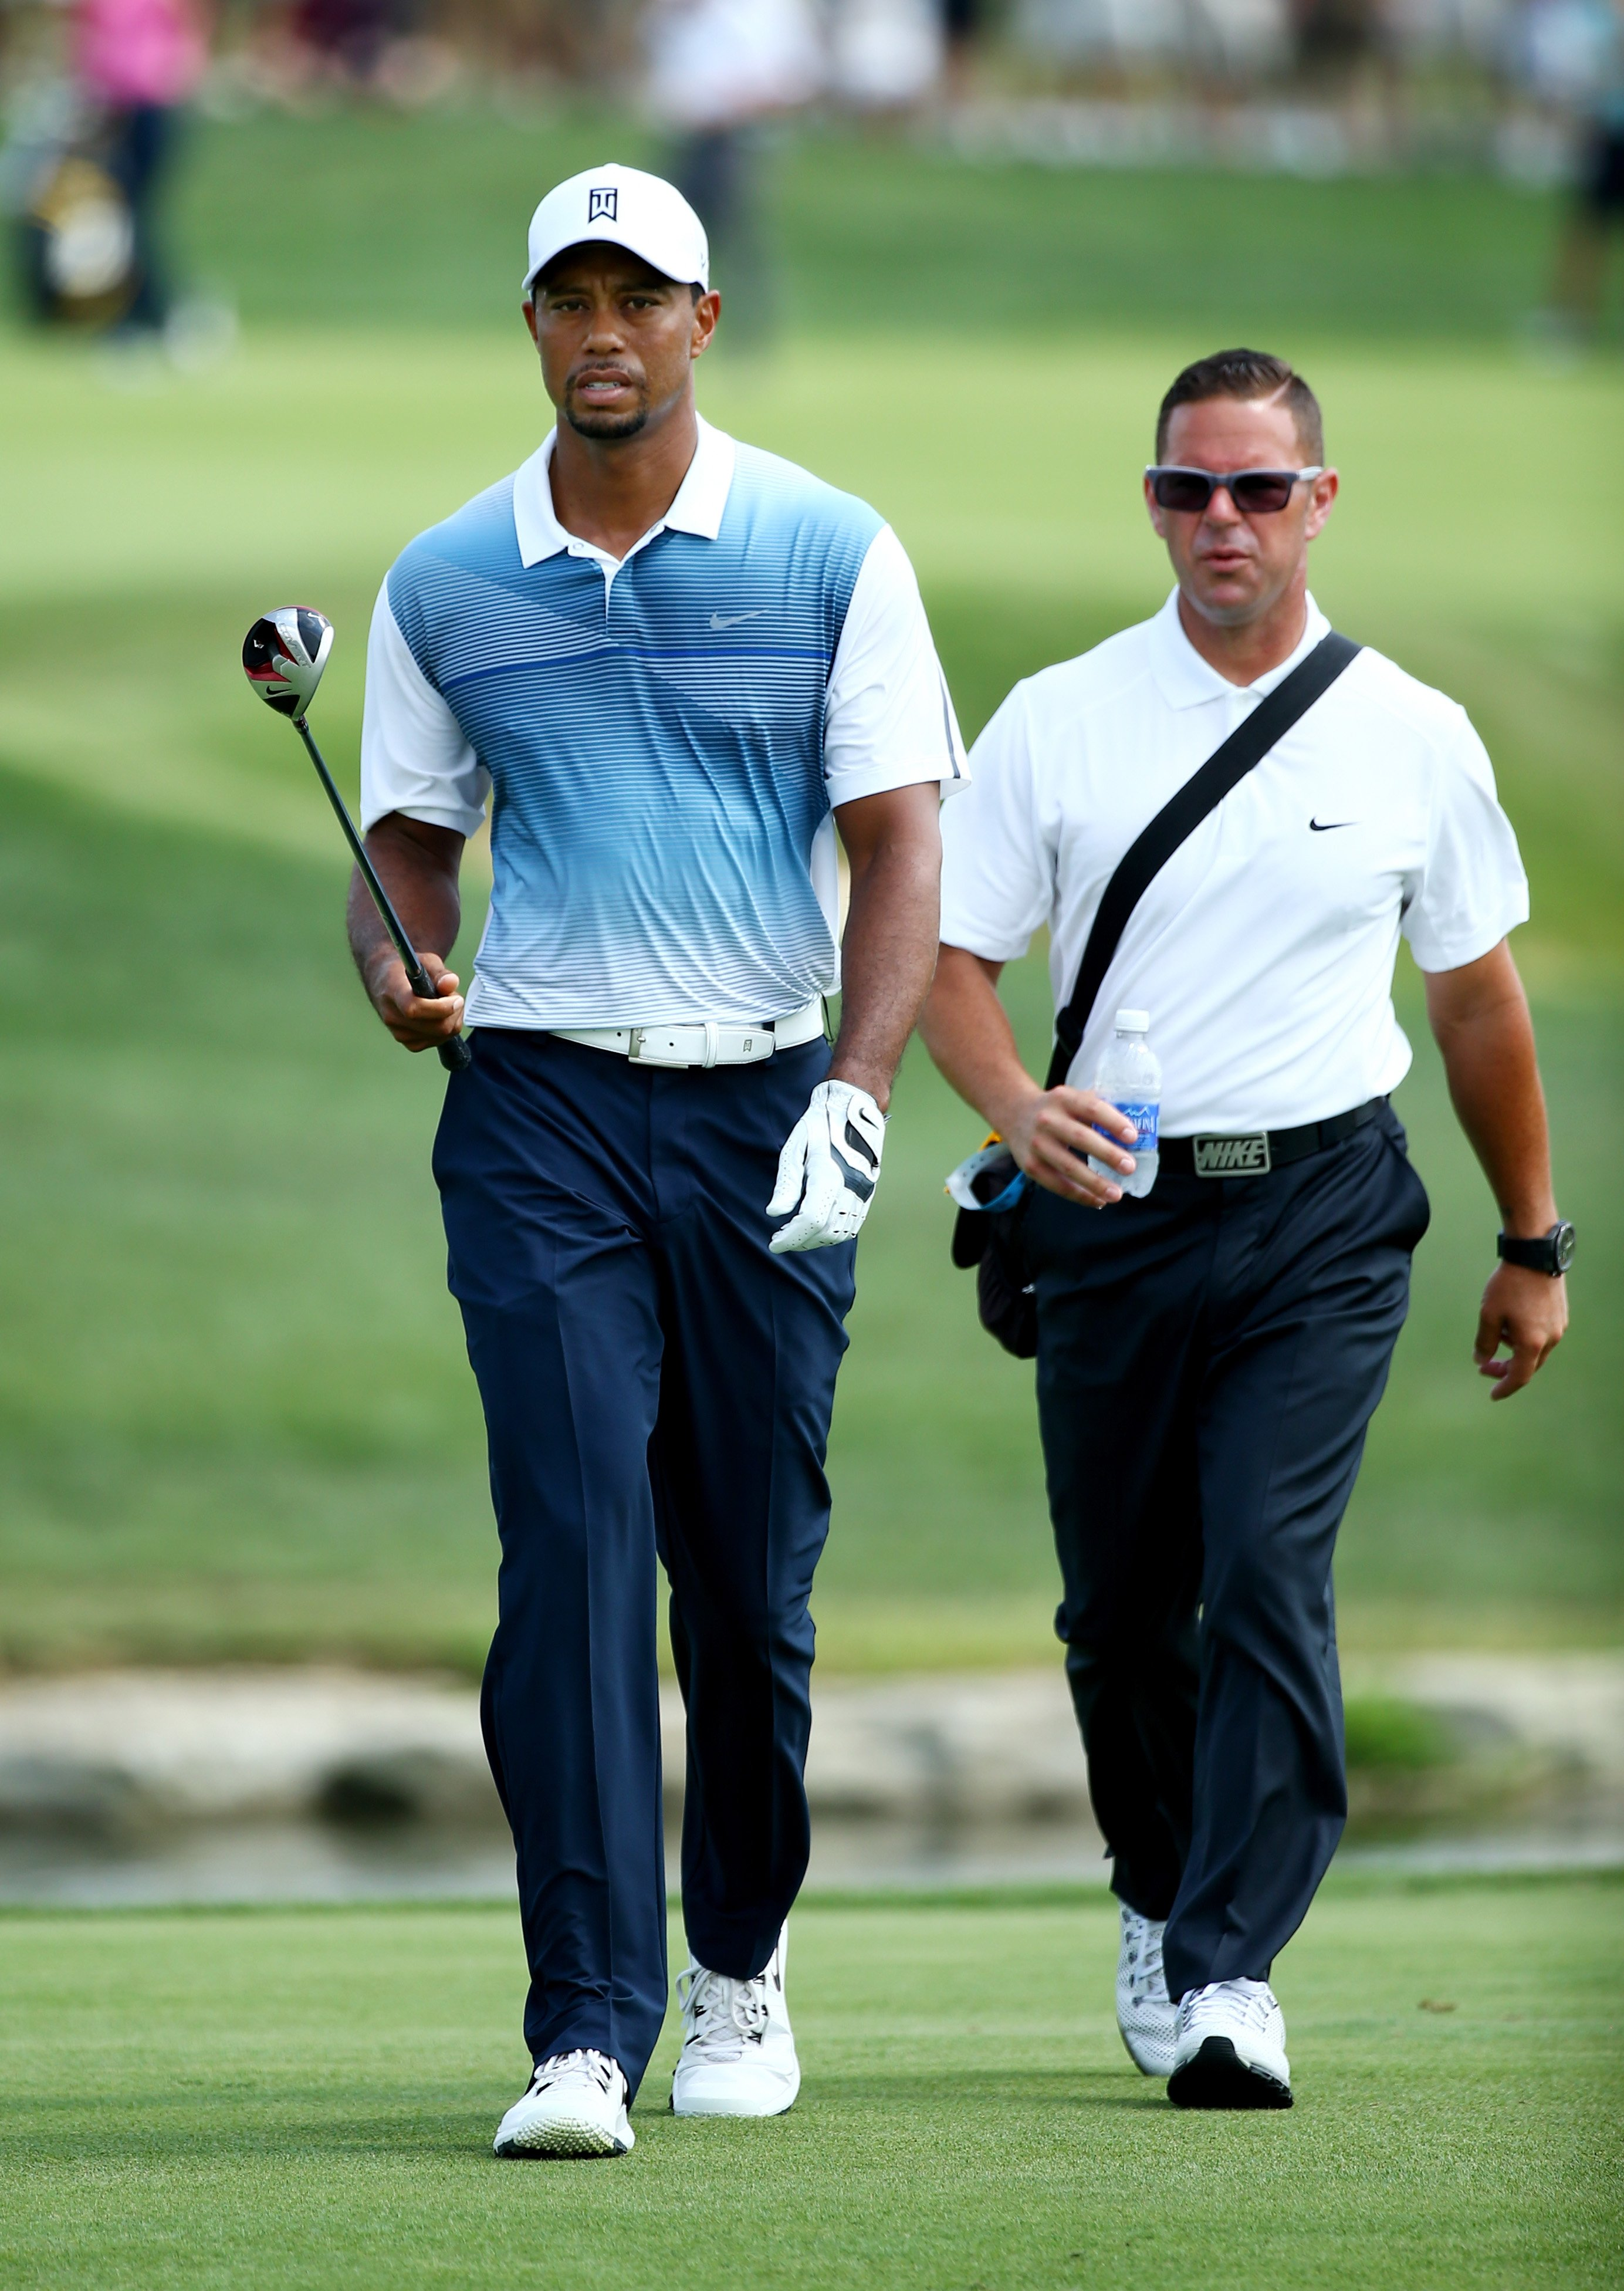 Sean Foley (right) coached Tiger Woods for four years.